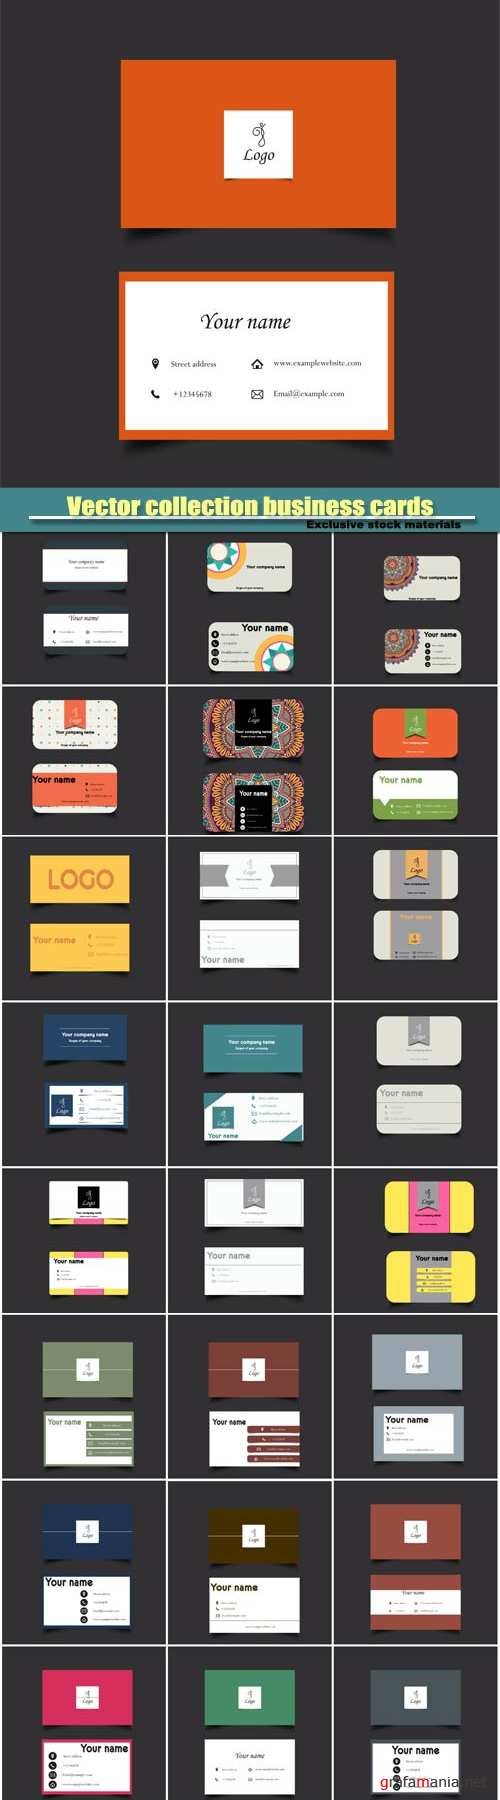 Vector collection business cards